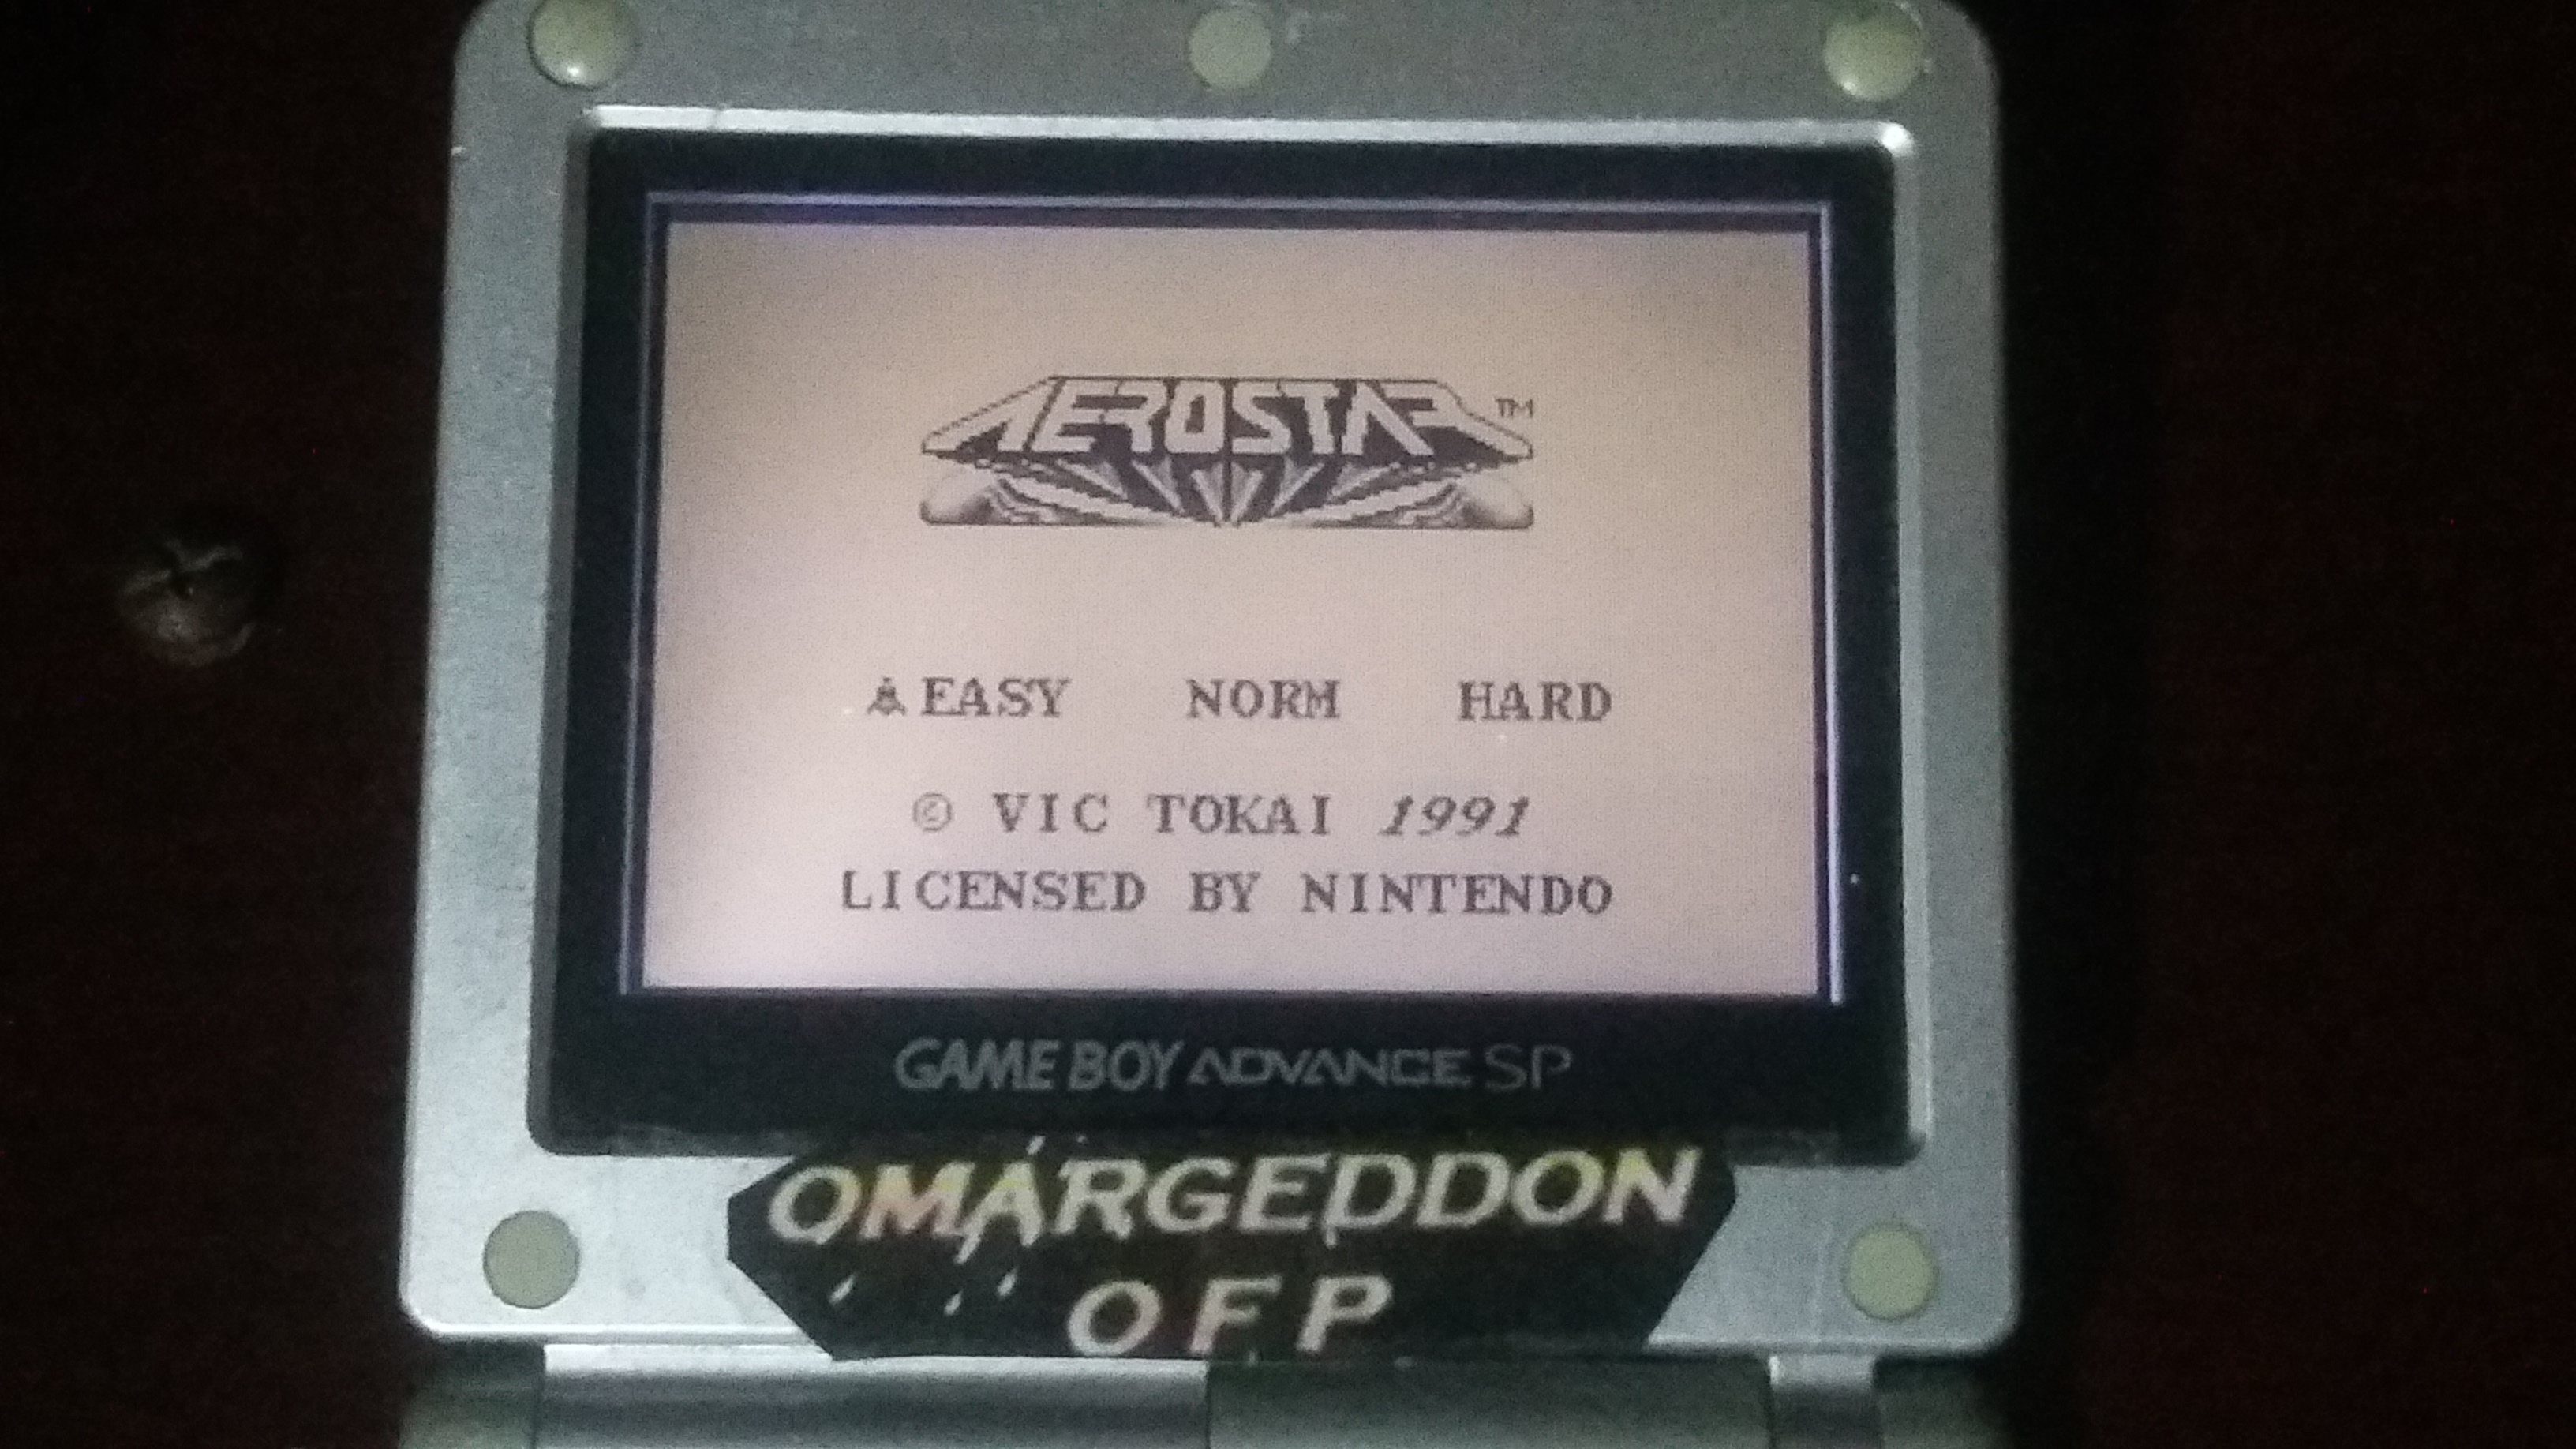 omargeddon: Aero Star [Easy] (Game Boy) 26,500 points on 2018-06-01 19:50:40